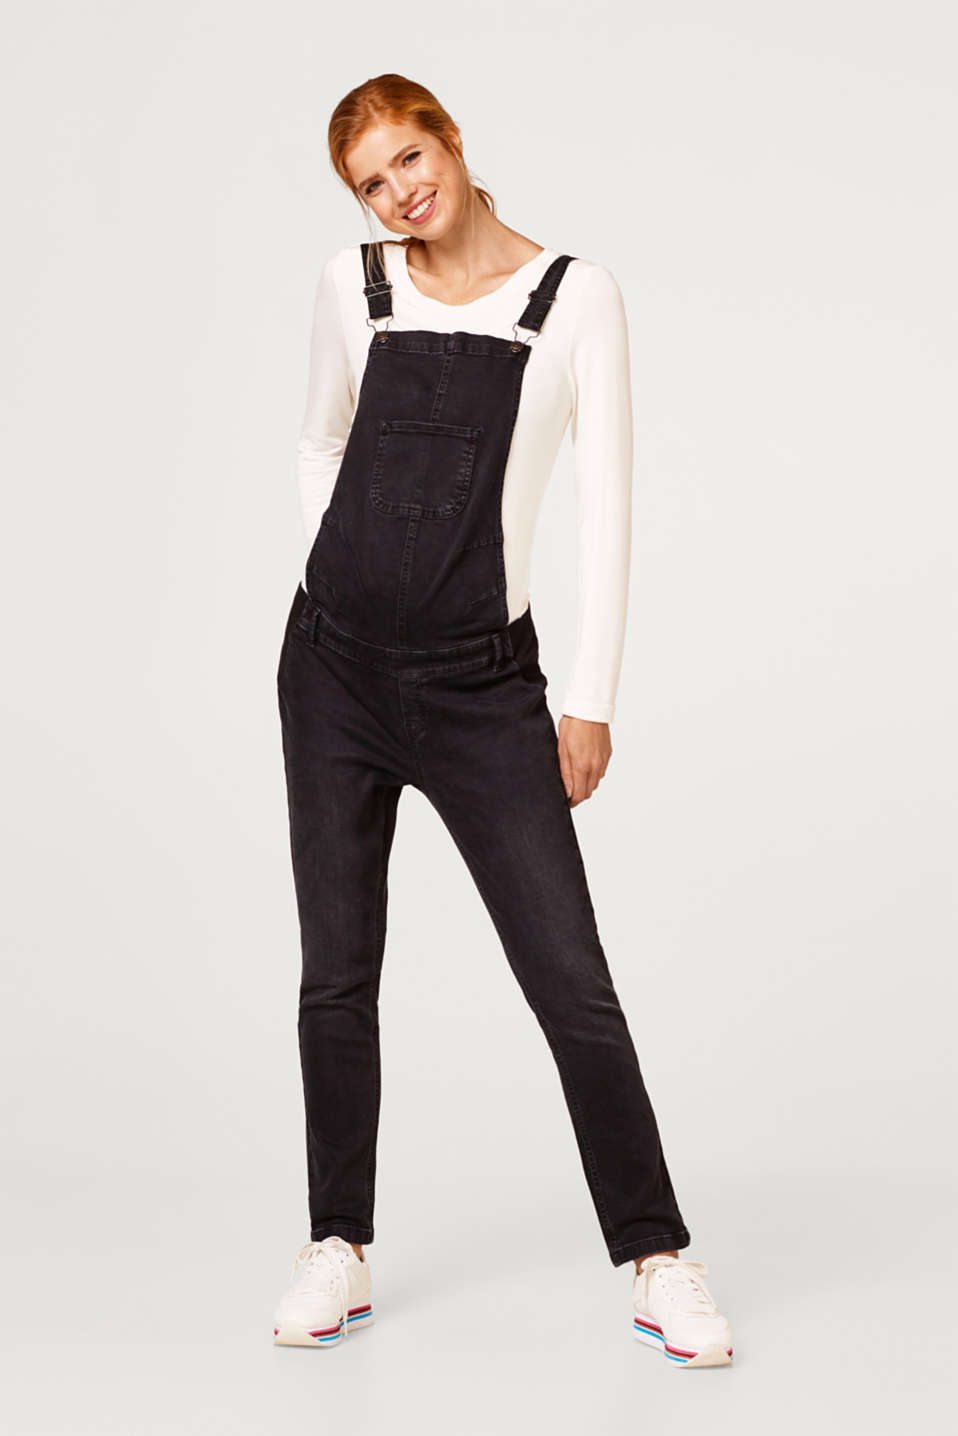 Esprit - Stretch dungarees in robust black denim